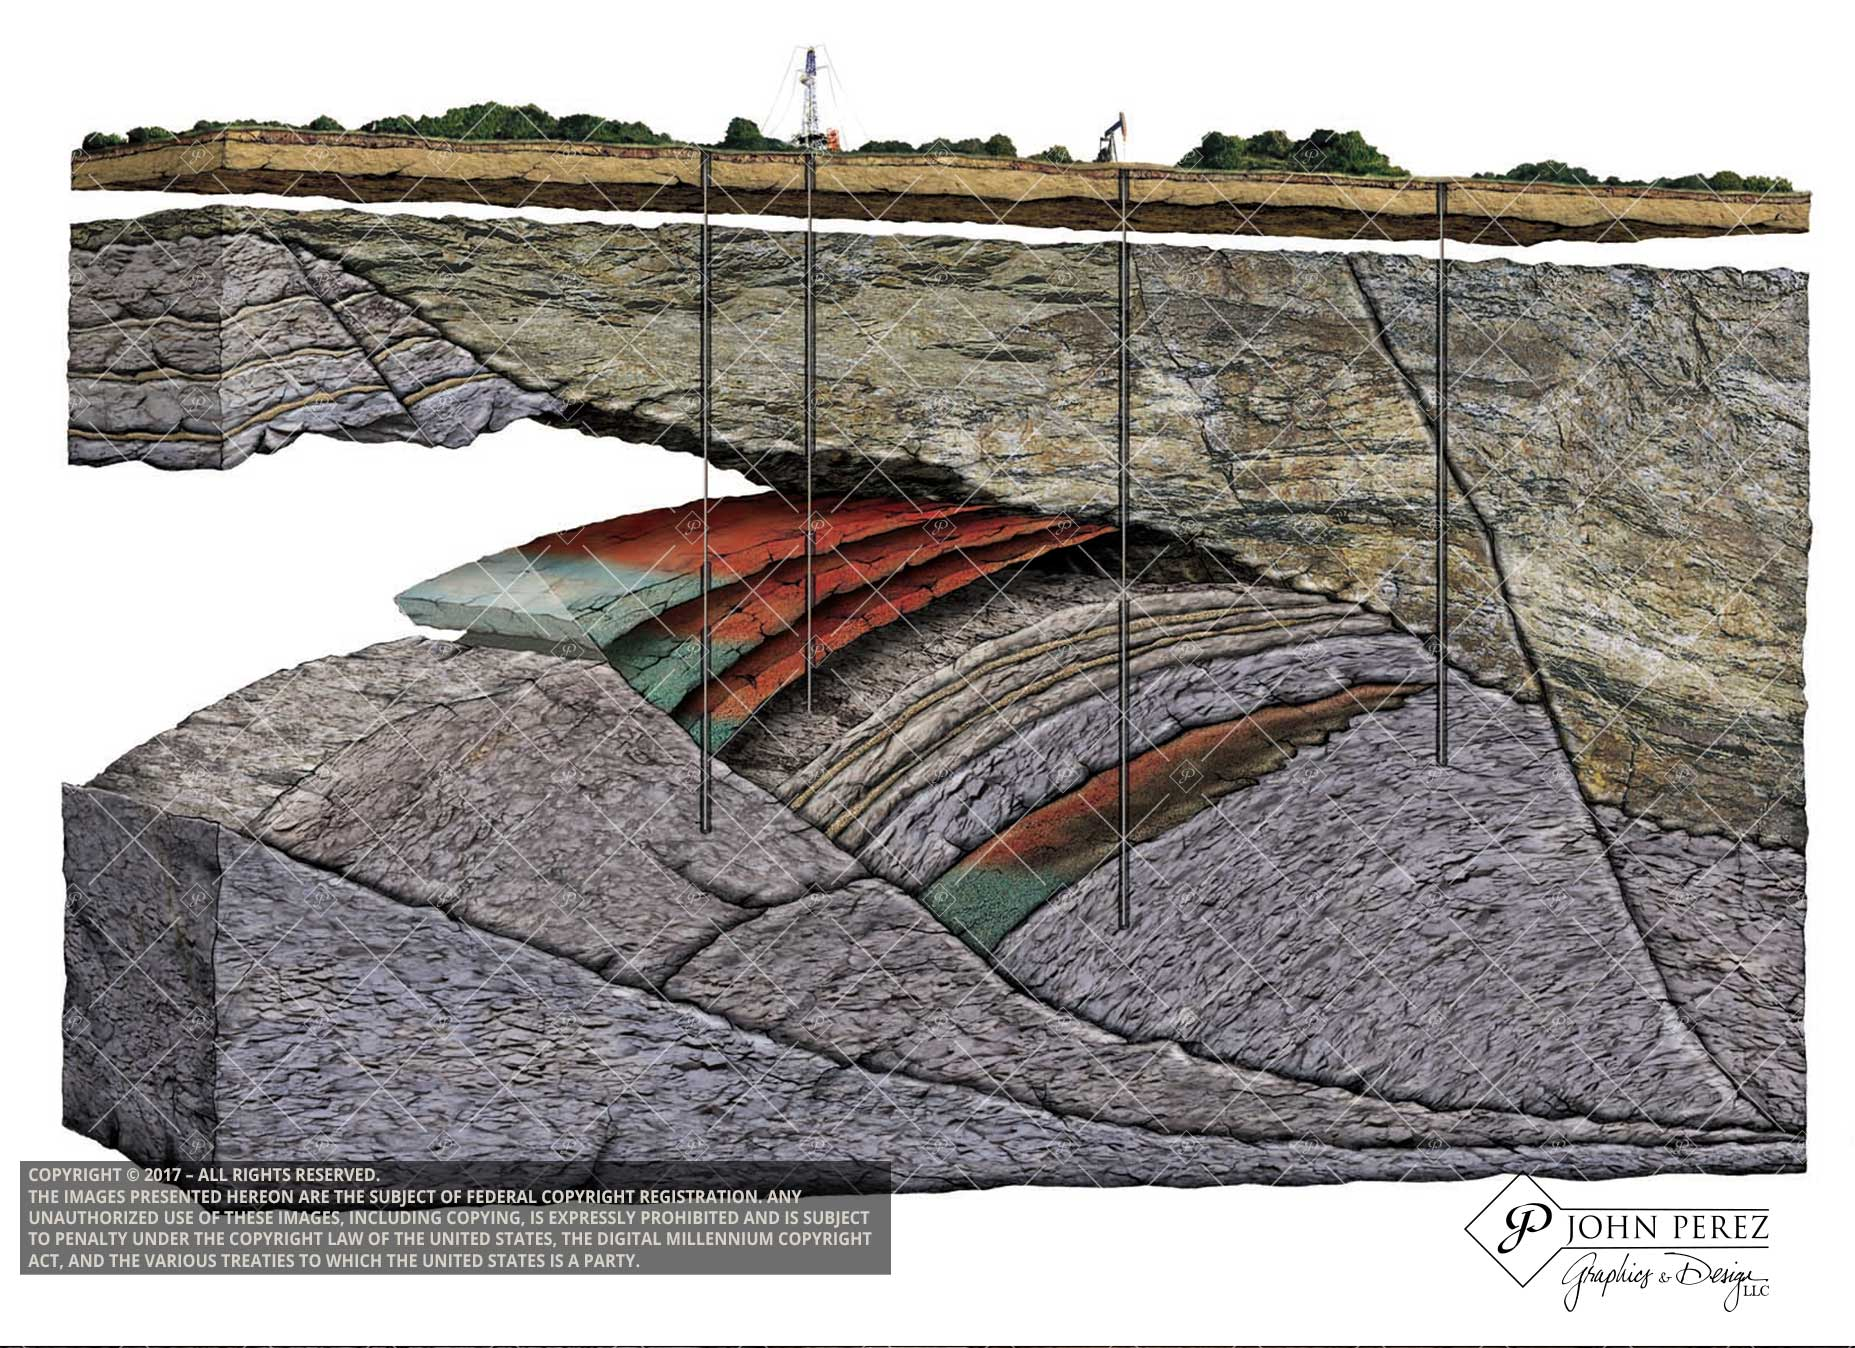 Stacked Pay Zones in Fault Shale Trap, john perez graphics, oil gas schematic, oil gas illustration, drilling illustration, vertical drilling